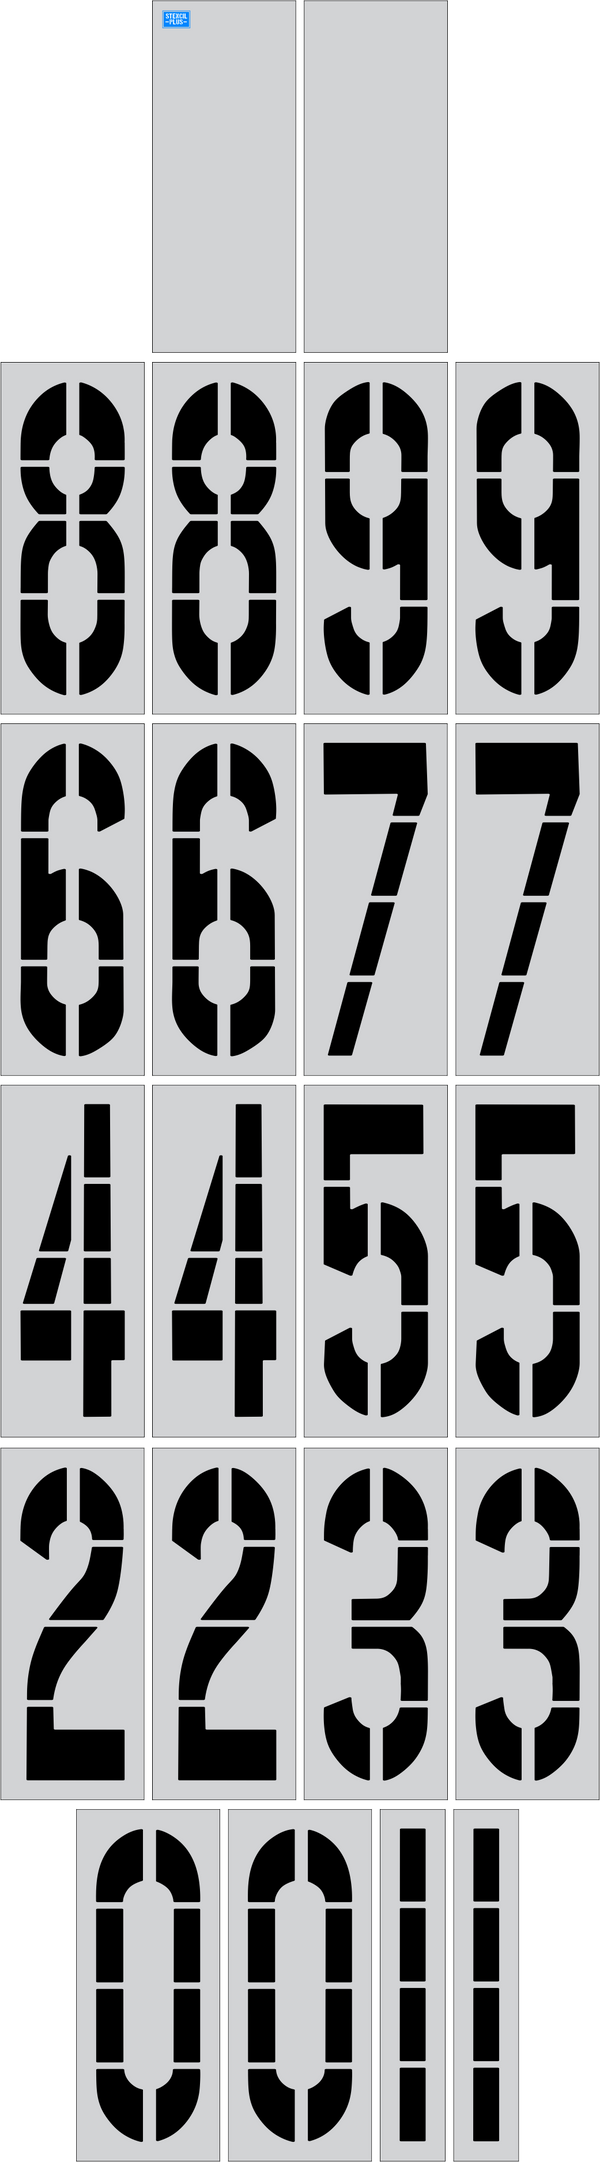 "48"" x 16"" Number Kit Parking Lot Pavement Marking Stencil"